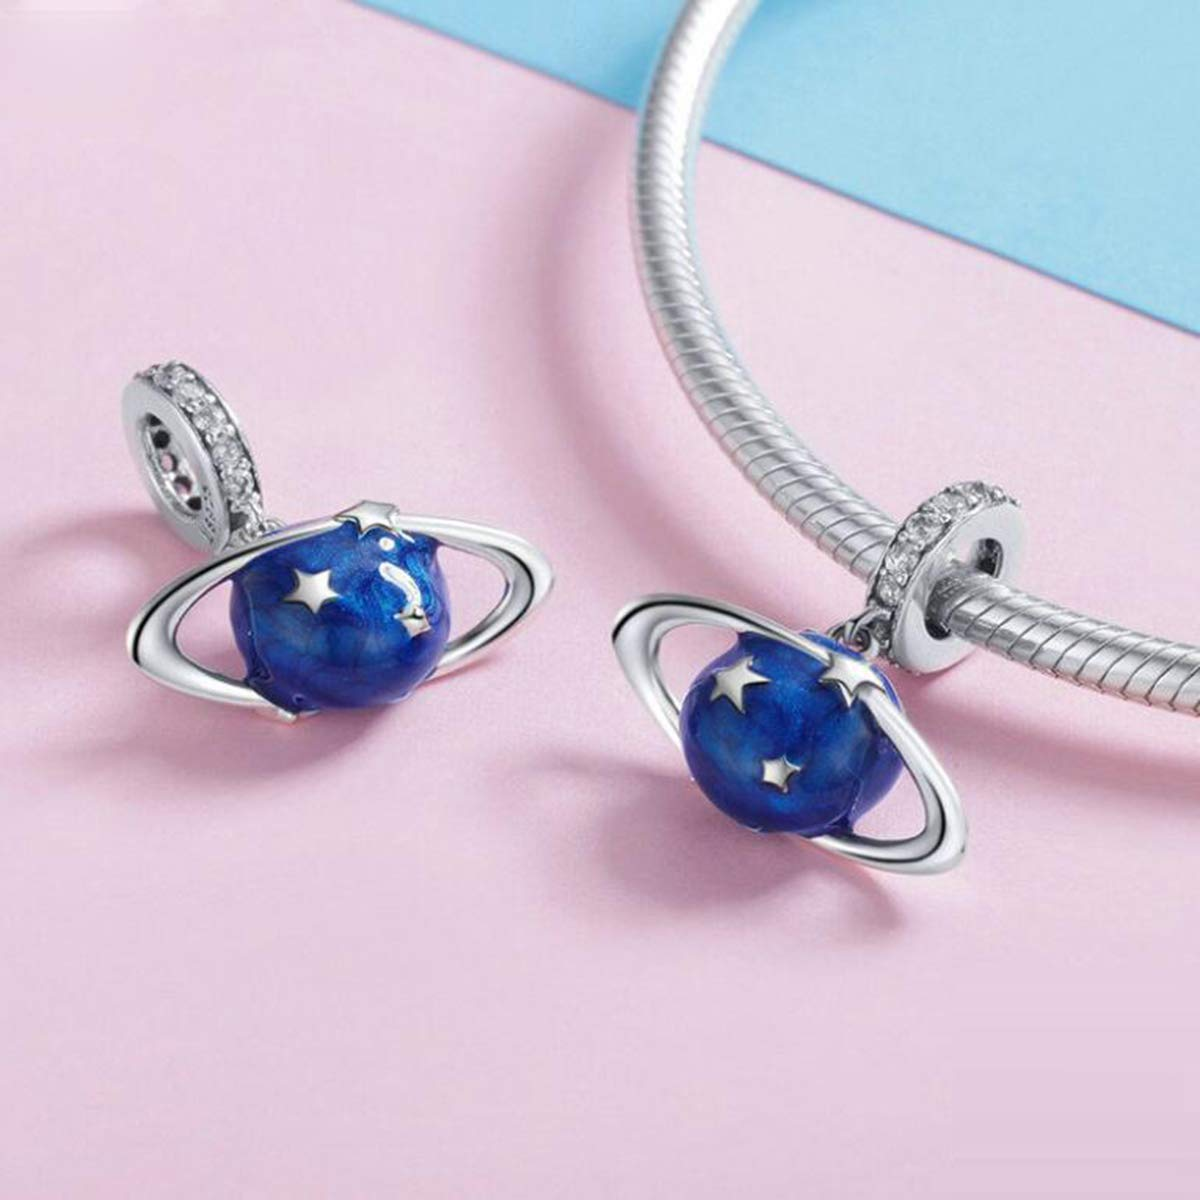 Aircraft Charms Ocean Blue Earth World Globe Dangle Beads Airplane Travel with Stars Crystals World Trip Charms I Love Travel Charm 925 Sterling Silver Charms Beads for European Charm Bracelets